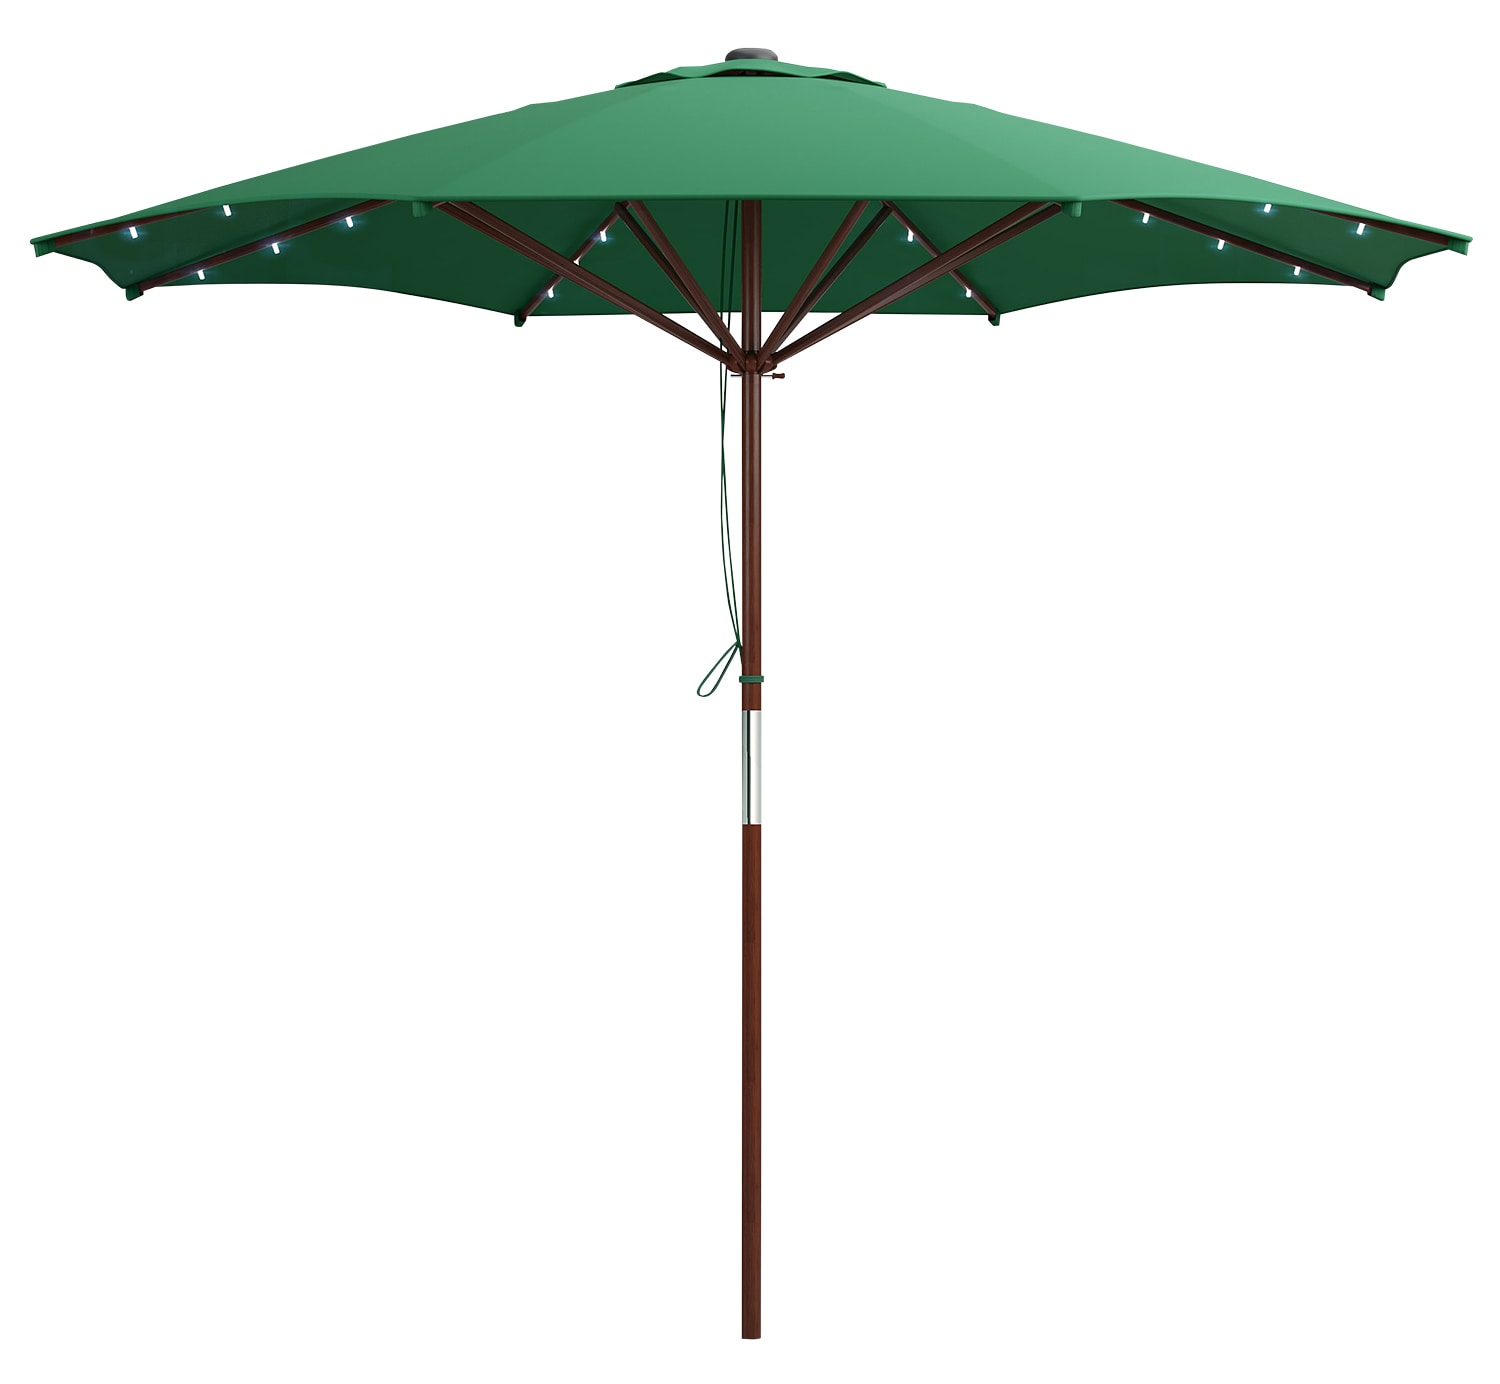 Wood-Frame Patio Umbrella with LED Lighting – Green